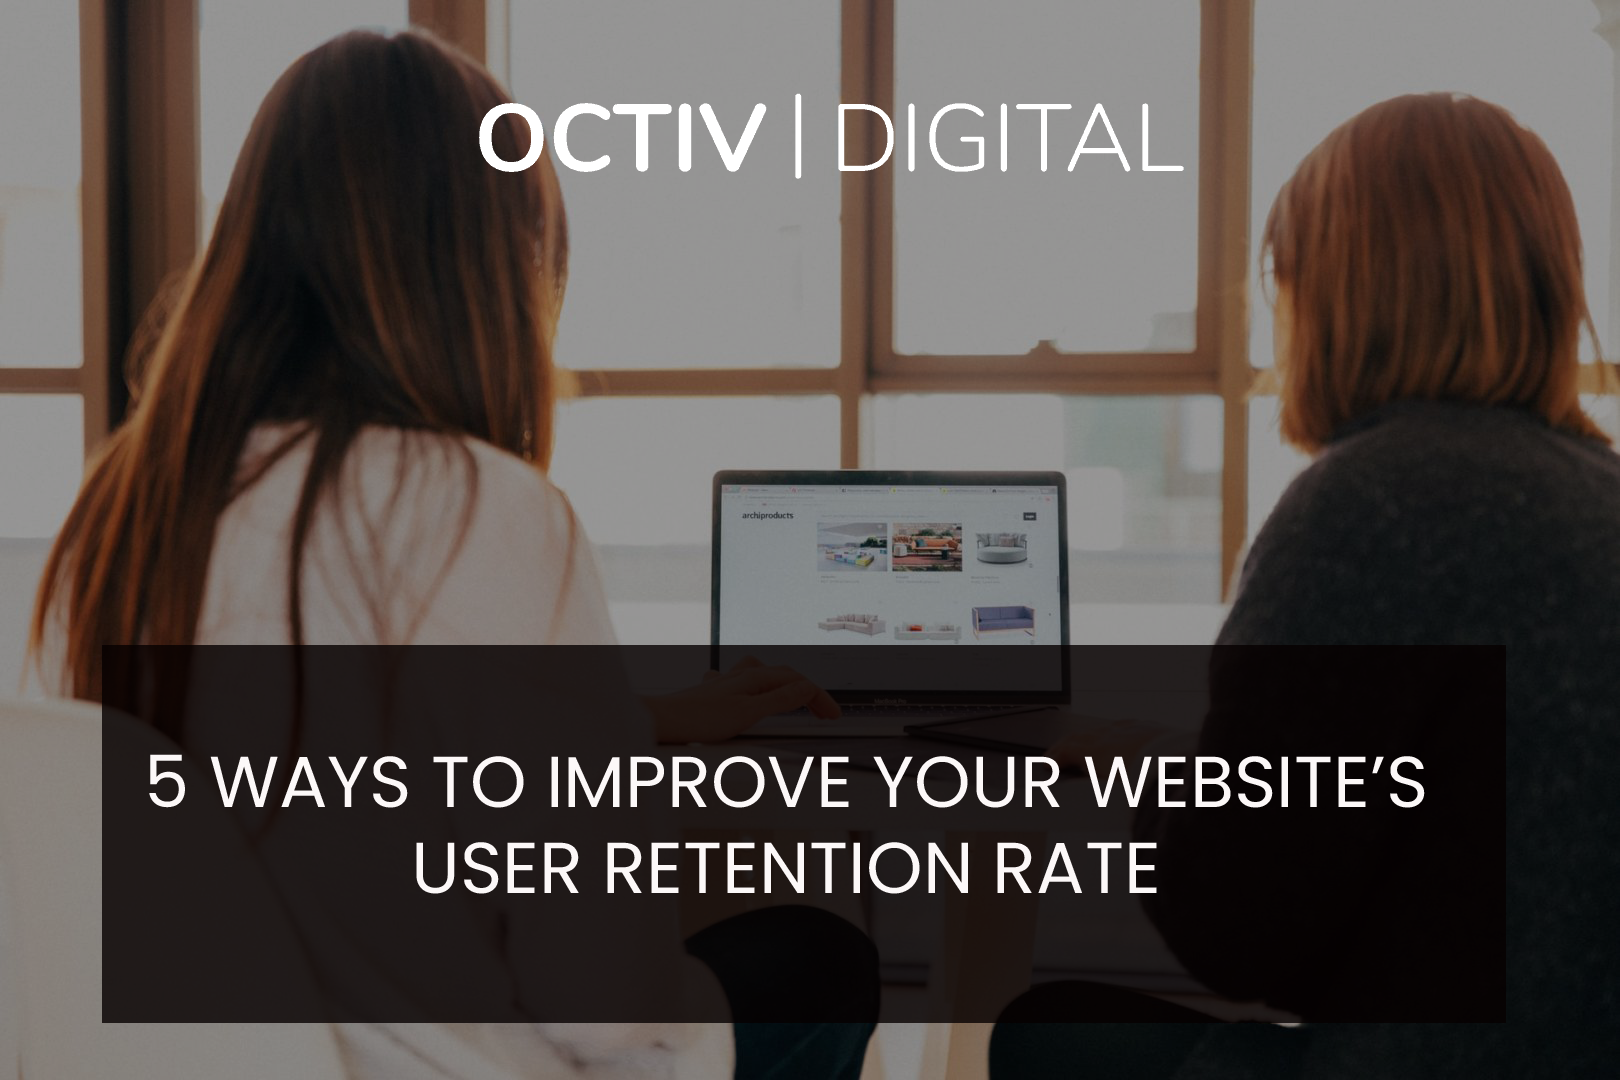 5 Ways to Improve Your Website's User Retention Rate